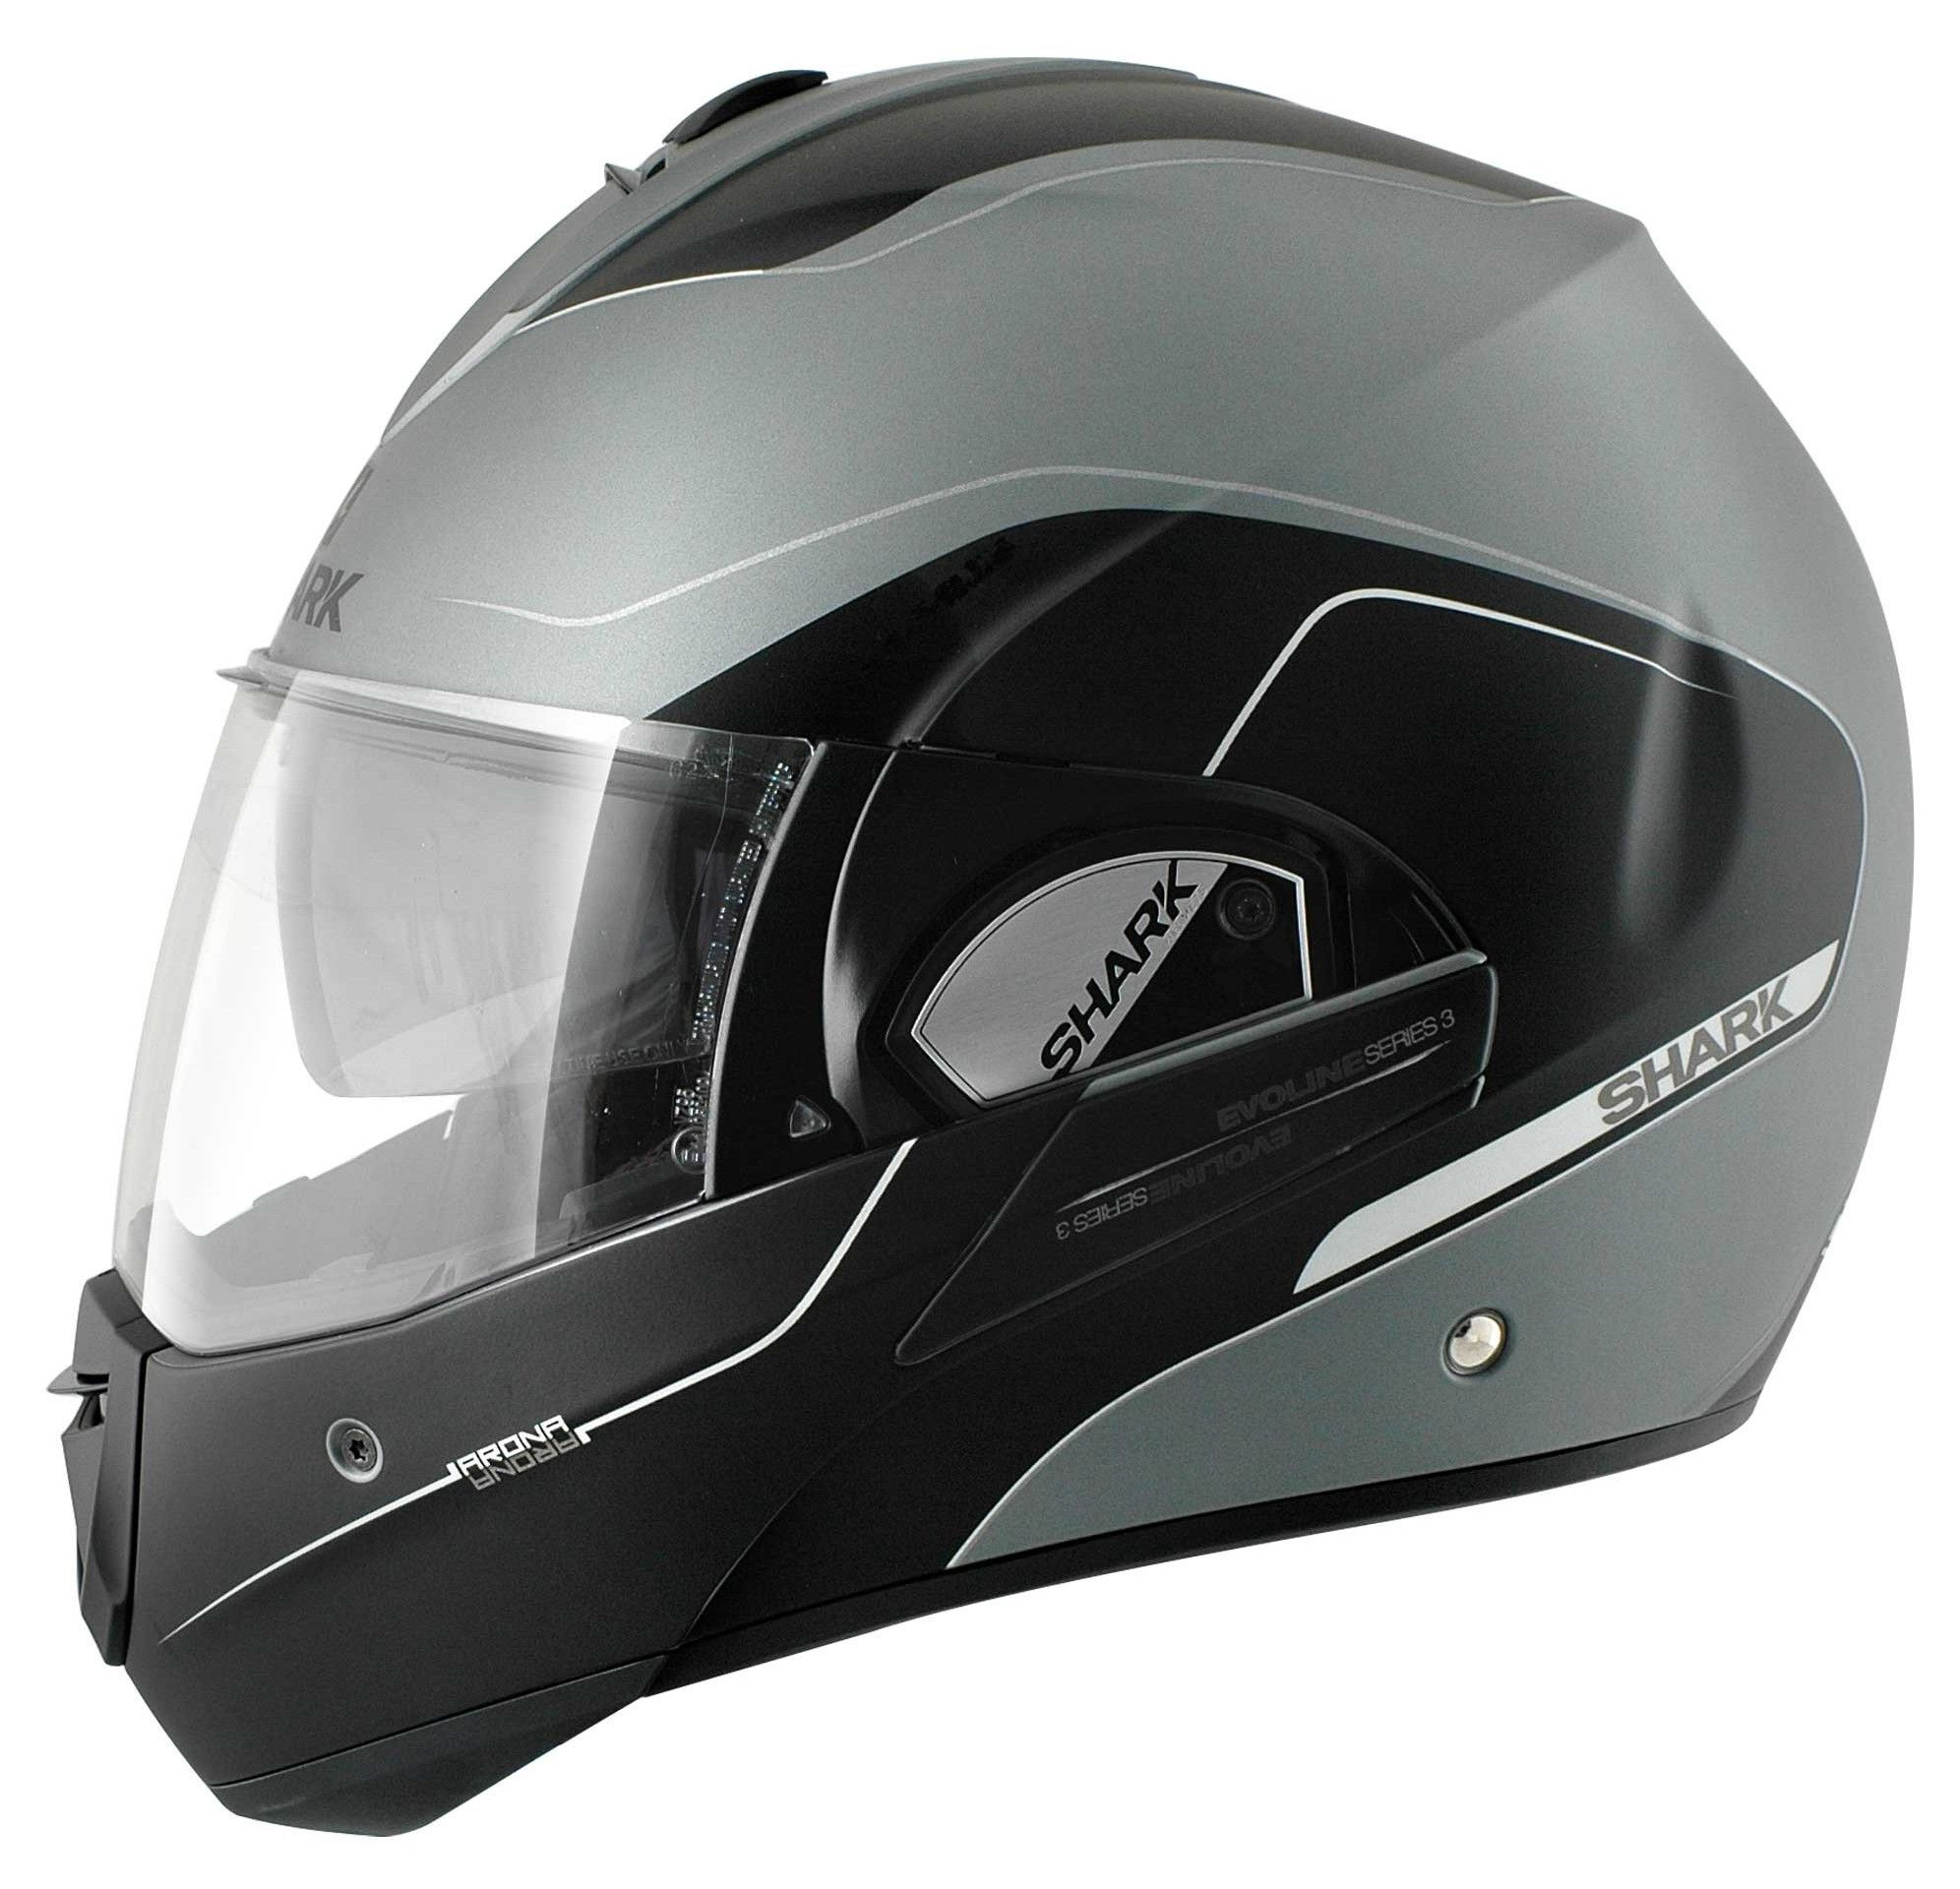 shark evoline 3 st arona helmet size xs only revzilla. Black Bedroom Furniture Sets. Home Design Ideas